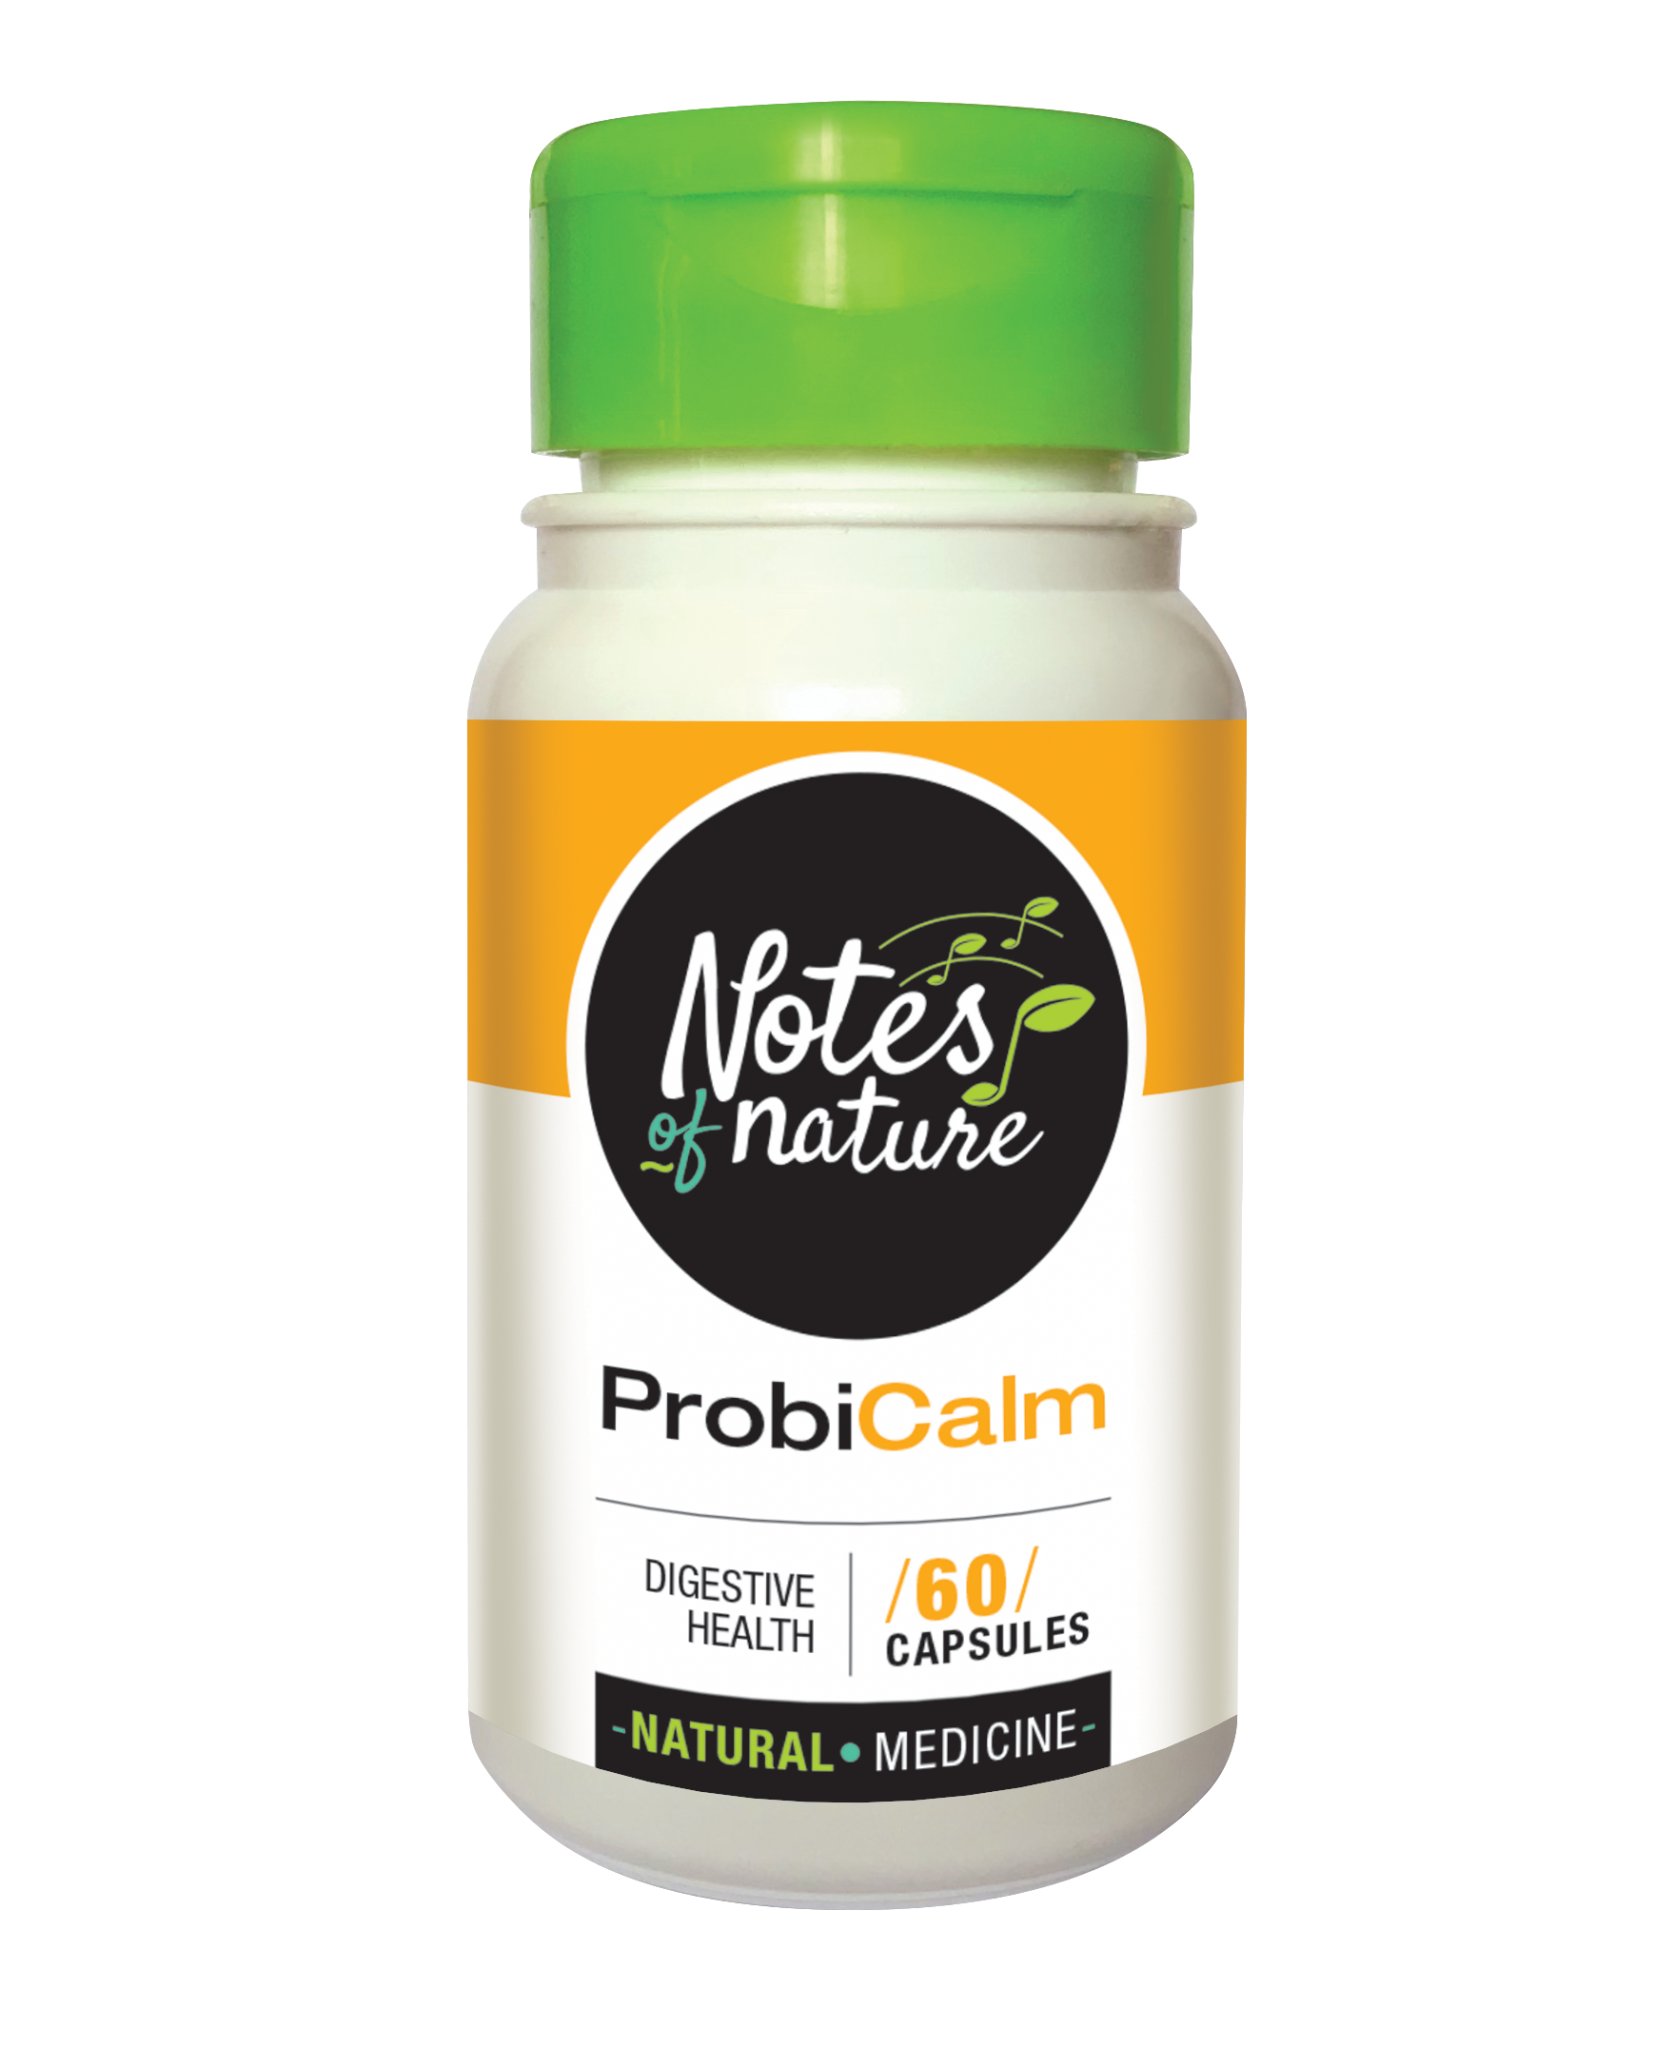 Notes of Nature ProbiCalm